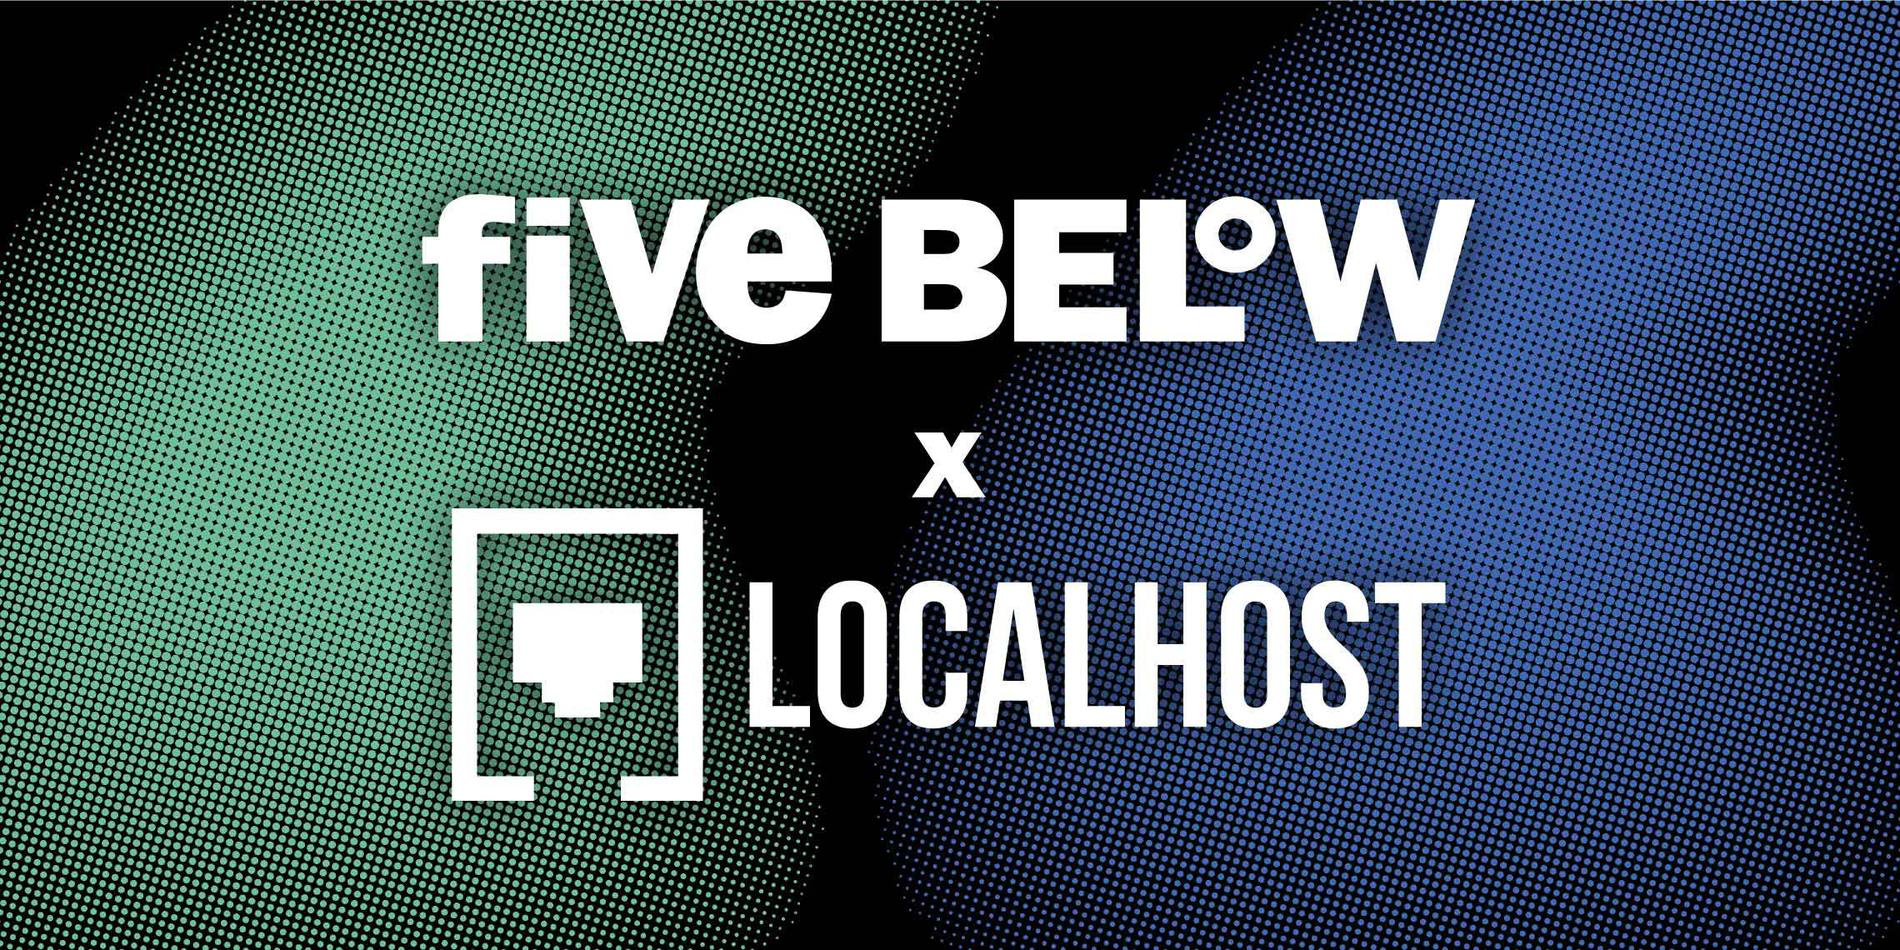 FIVE BELOW LOGO & LOCALHOST LOGO